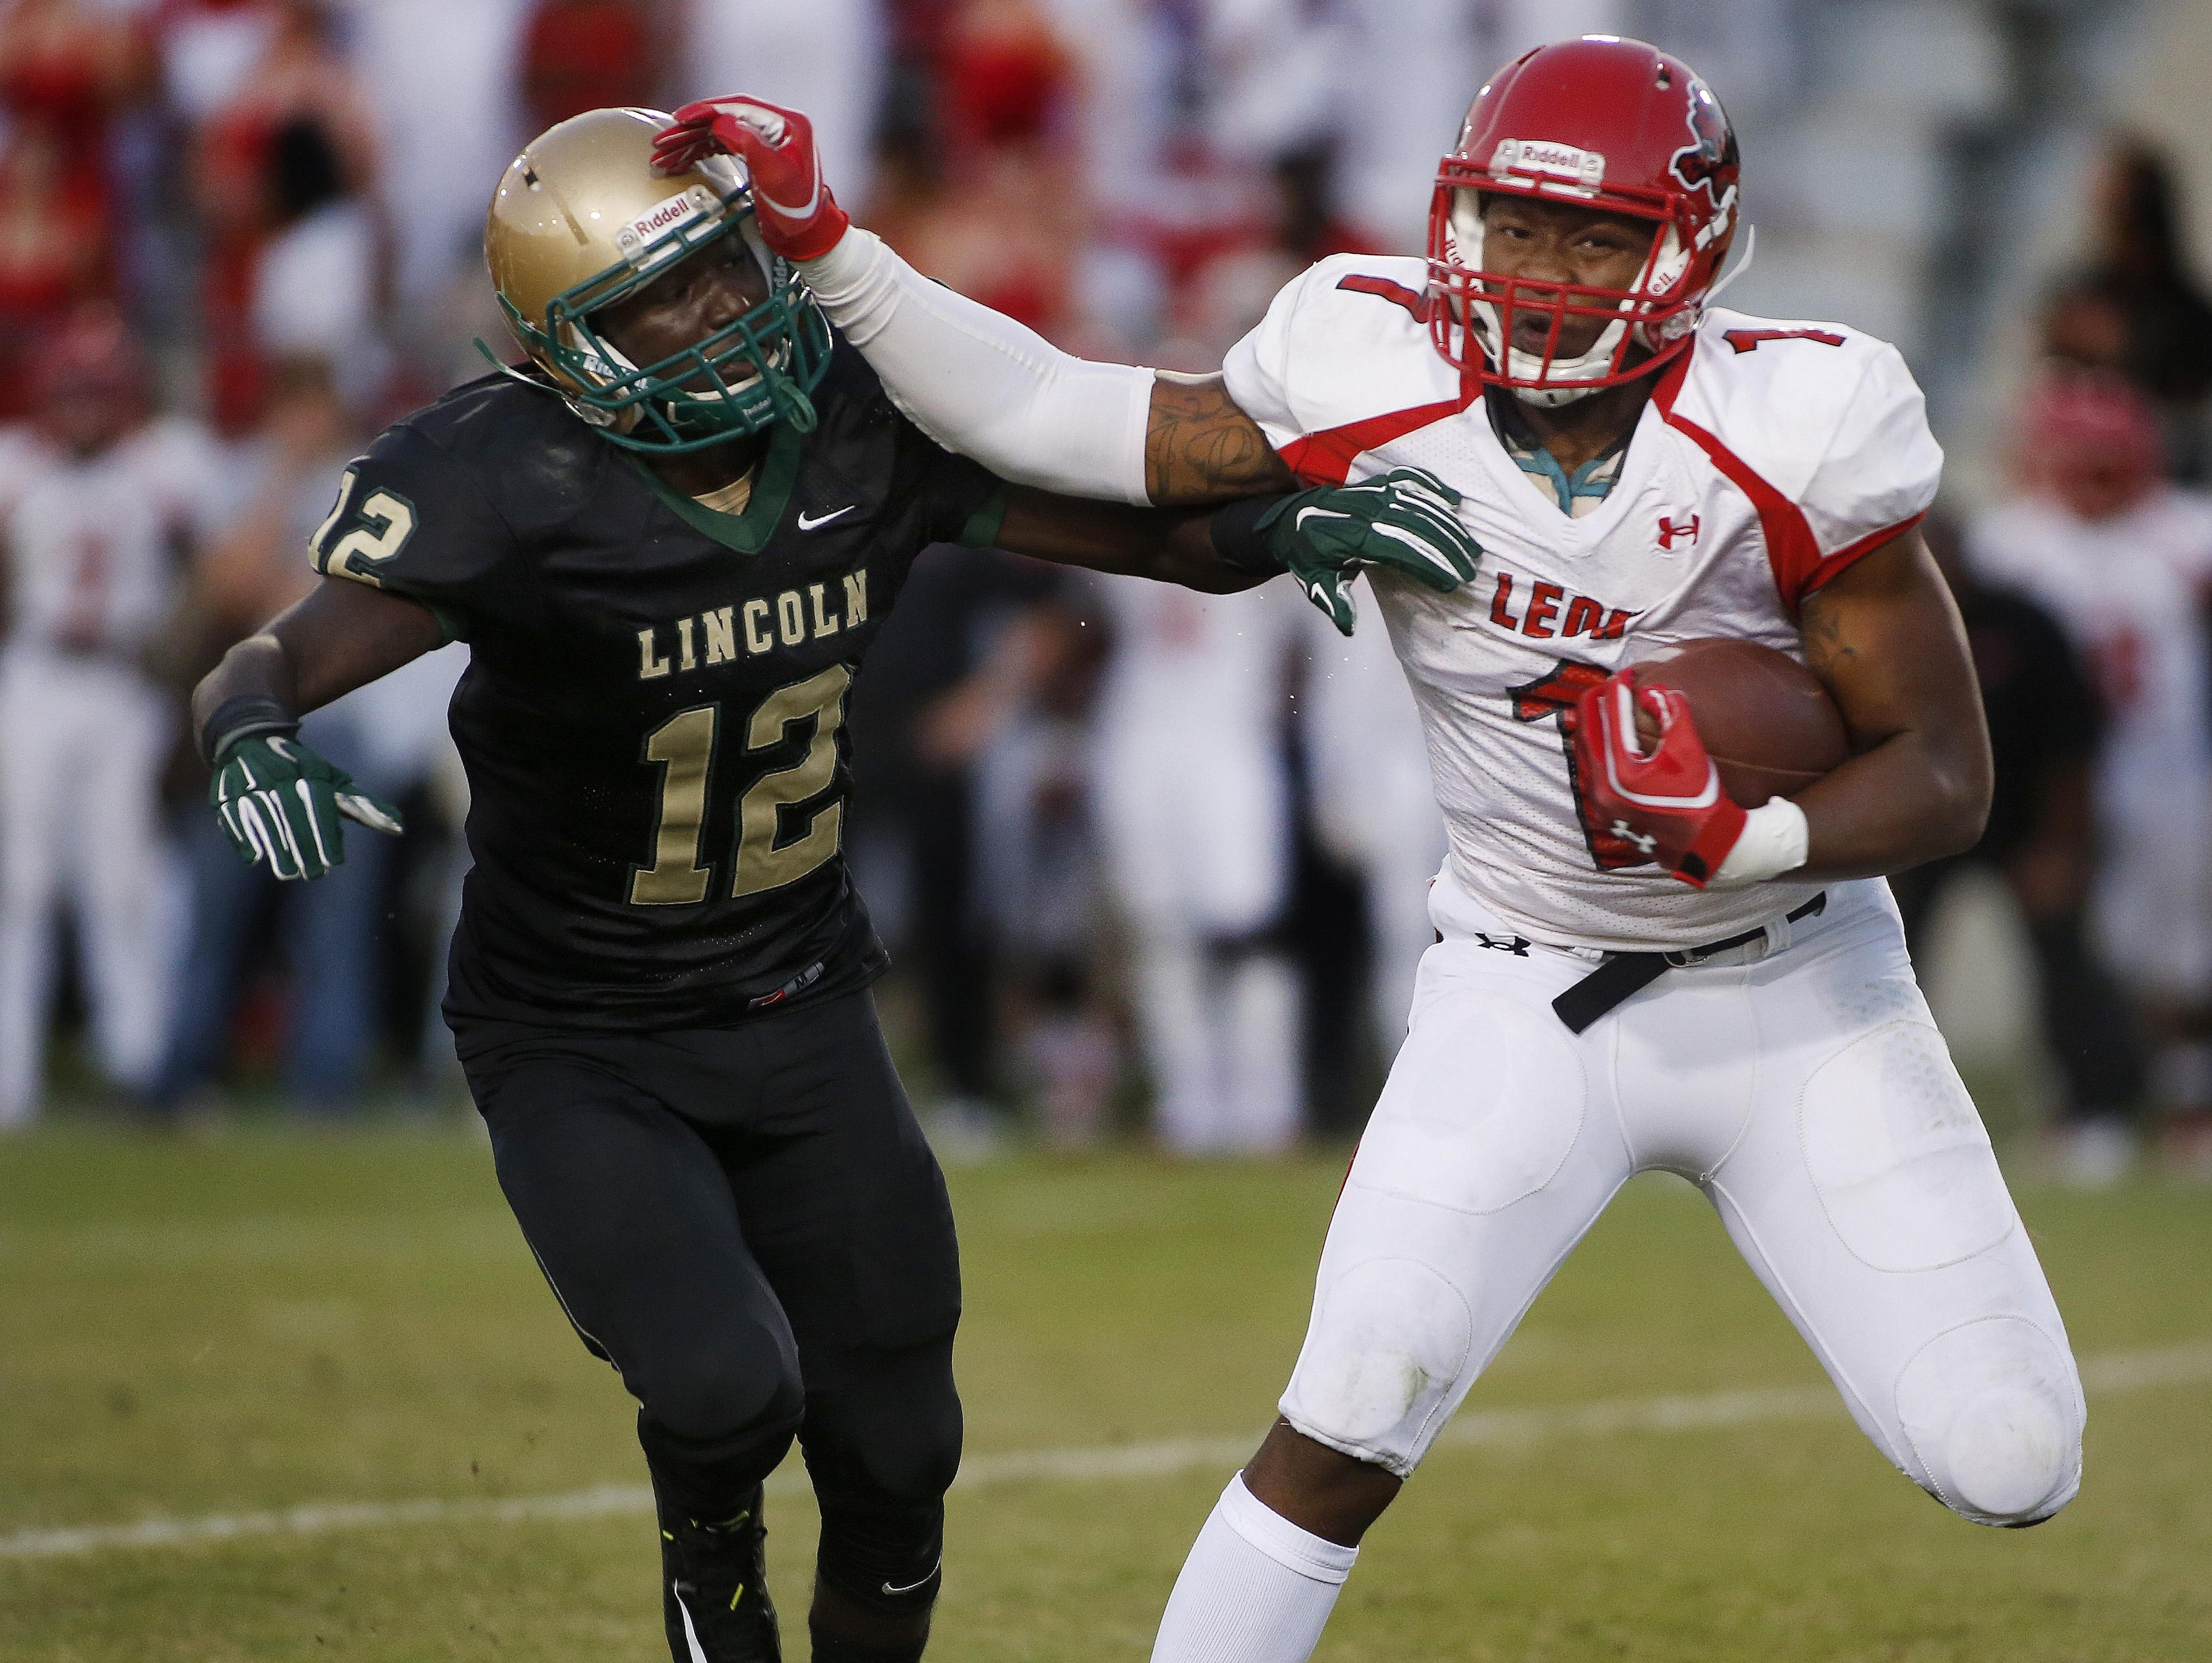 Leon alum D'anfernee McGriff delivers a stiff arm to Lincoln's Giovanni Weekley during a 2014 run. McGriff rushed for over 2,000 yards as a junior quarterback.